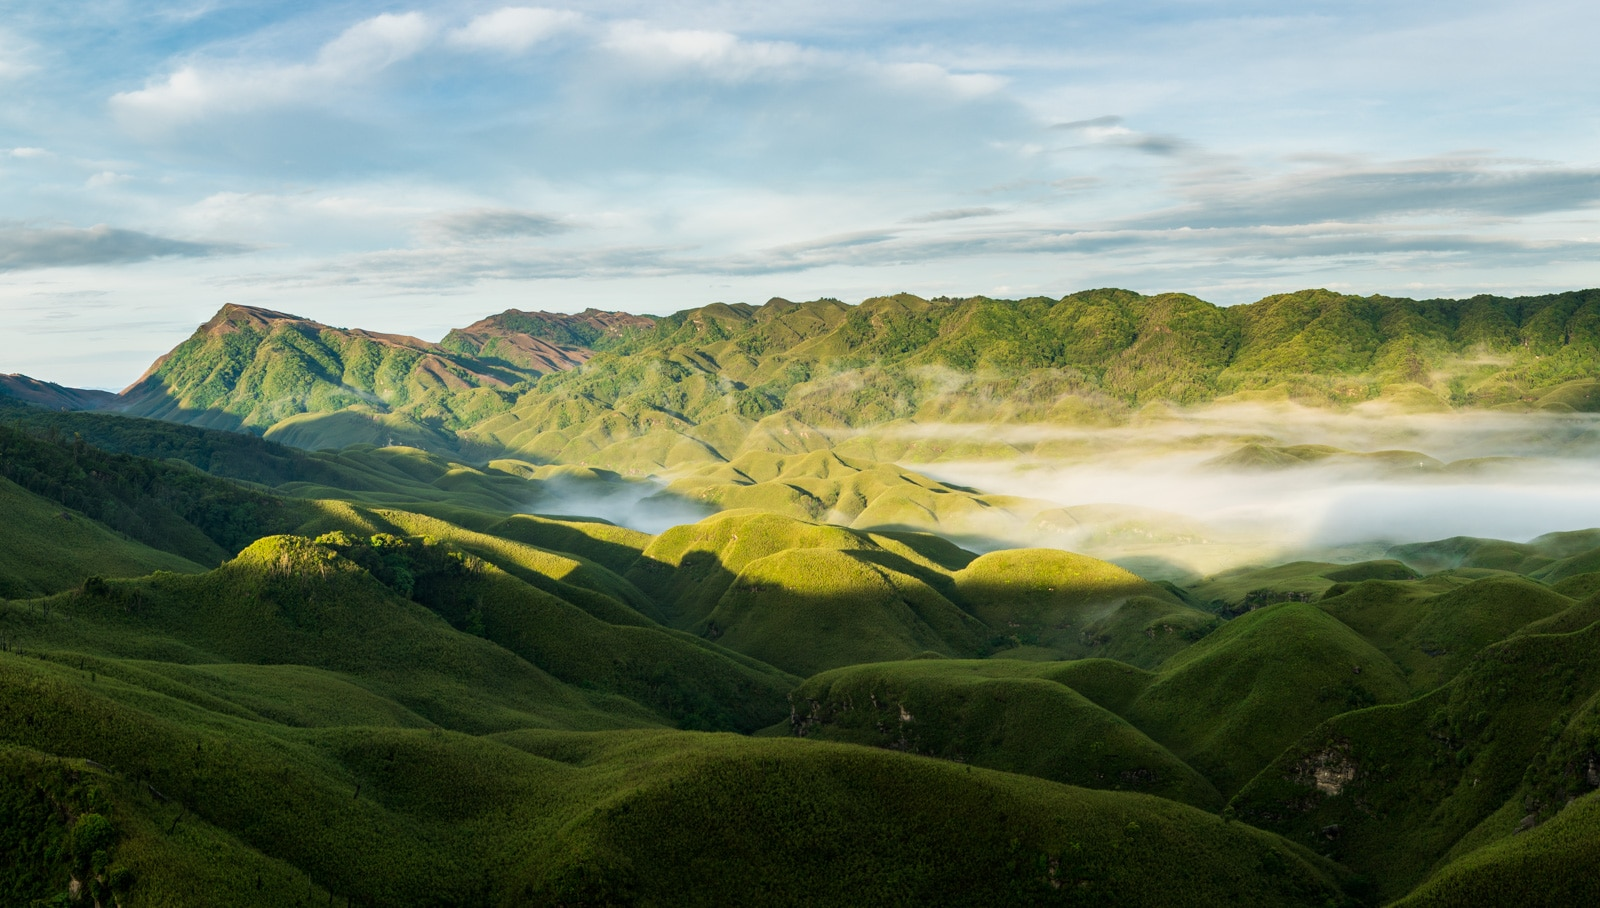 How to get to Dzukou Valley from Nagaland, India - Sunrise over Dzukou Valley on a foggy morning - Lost With Purpose